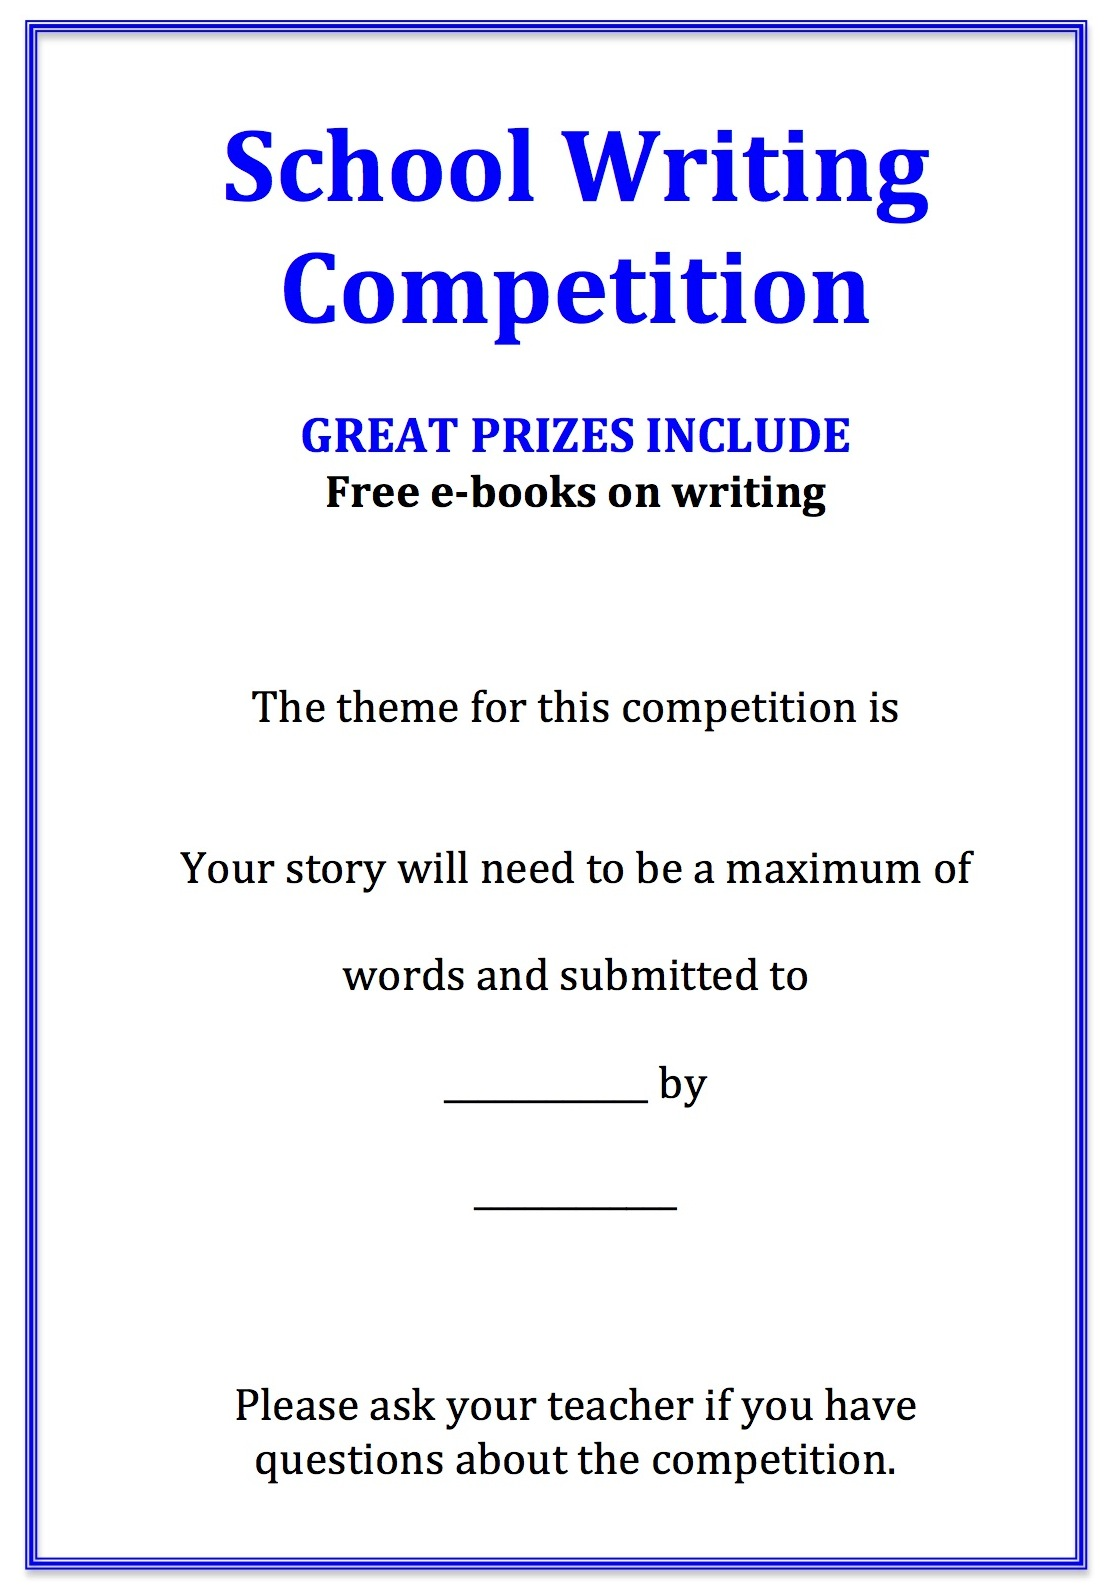 writing competition Writer's digest annual writing competition writer's digest hosts the annual writing competition this competition spotlights writing in many categories including.